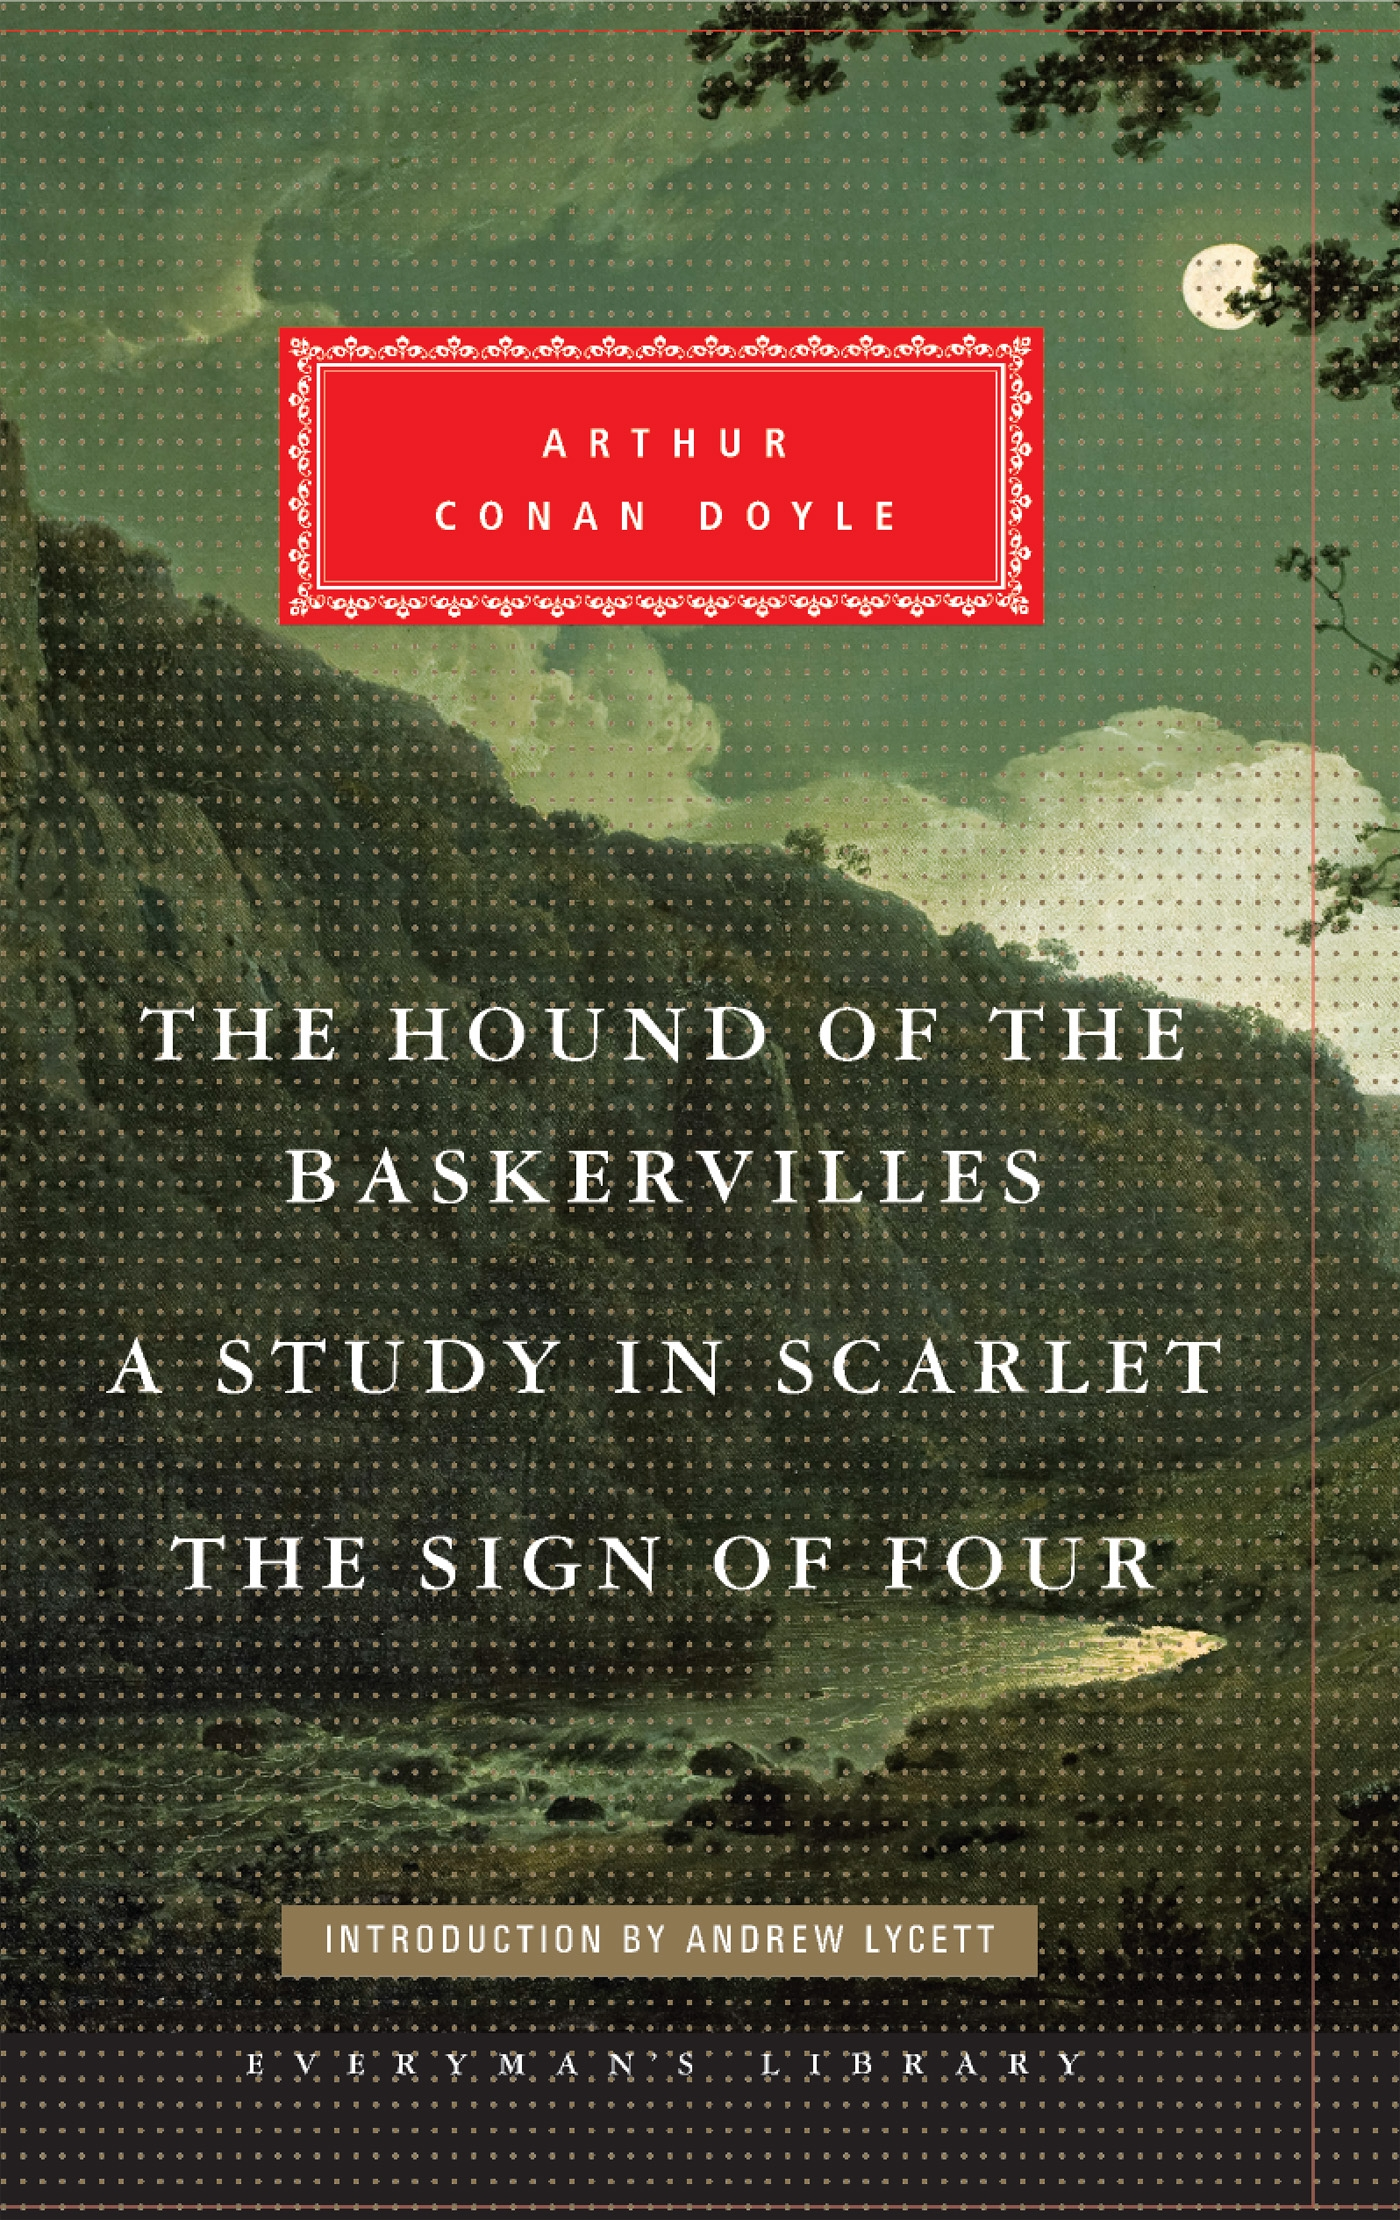 a literary analysis of the hound of the baskervilles sherlock holmes by sir arthur conan doyle The hound of the baskervilles by sir arthur conan doyle chapter 1 mr sherlock holmes the hound of the baskervilles chapter 2 the classic literature.